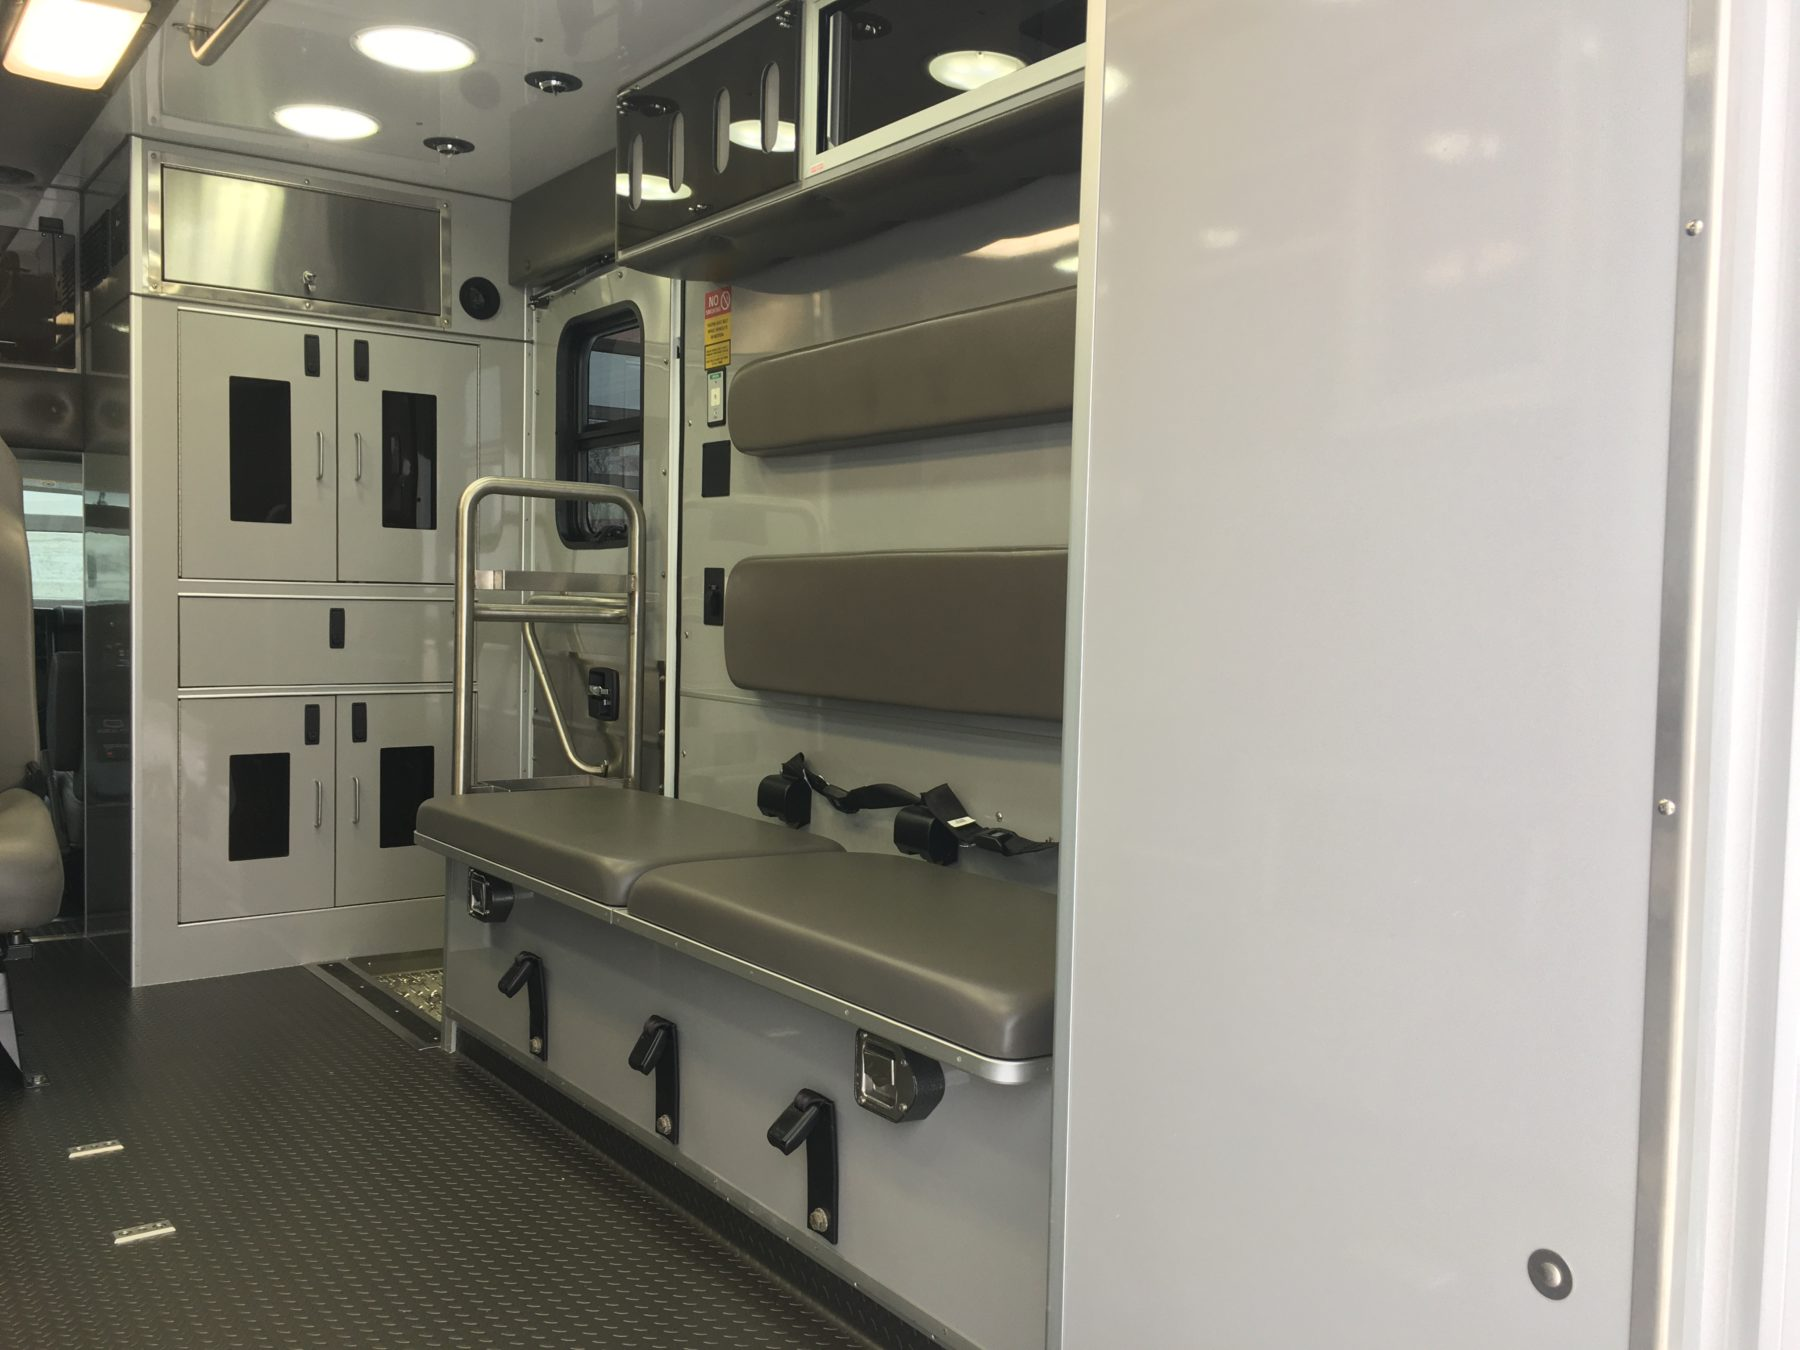 2020 Chevrolet G4500 Type 3 Ambulance For Sale – Picture 13